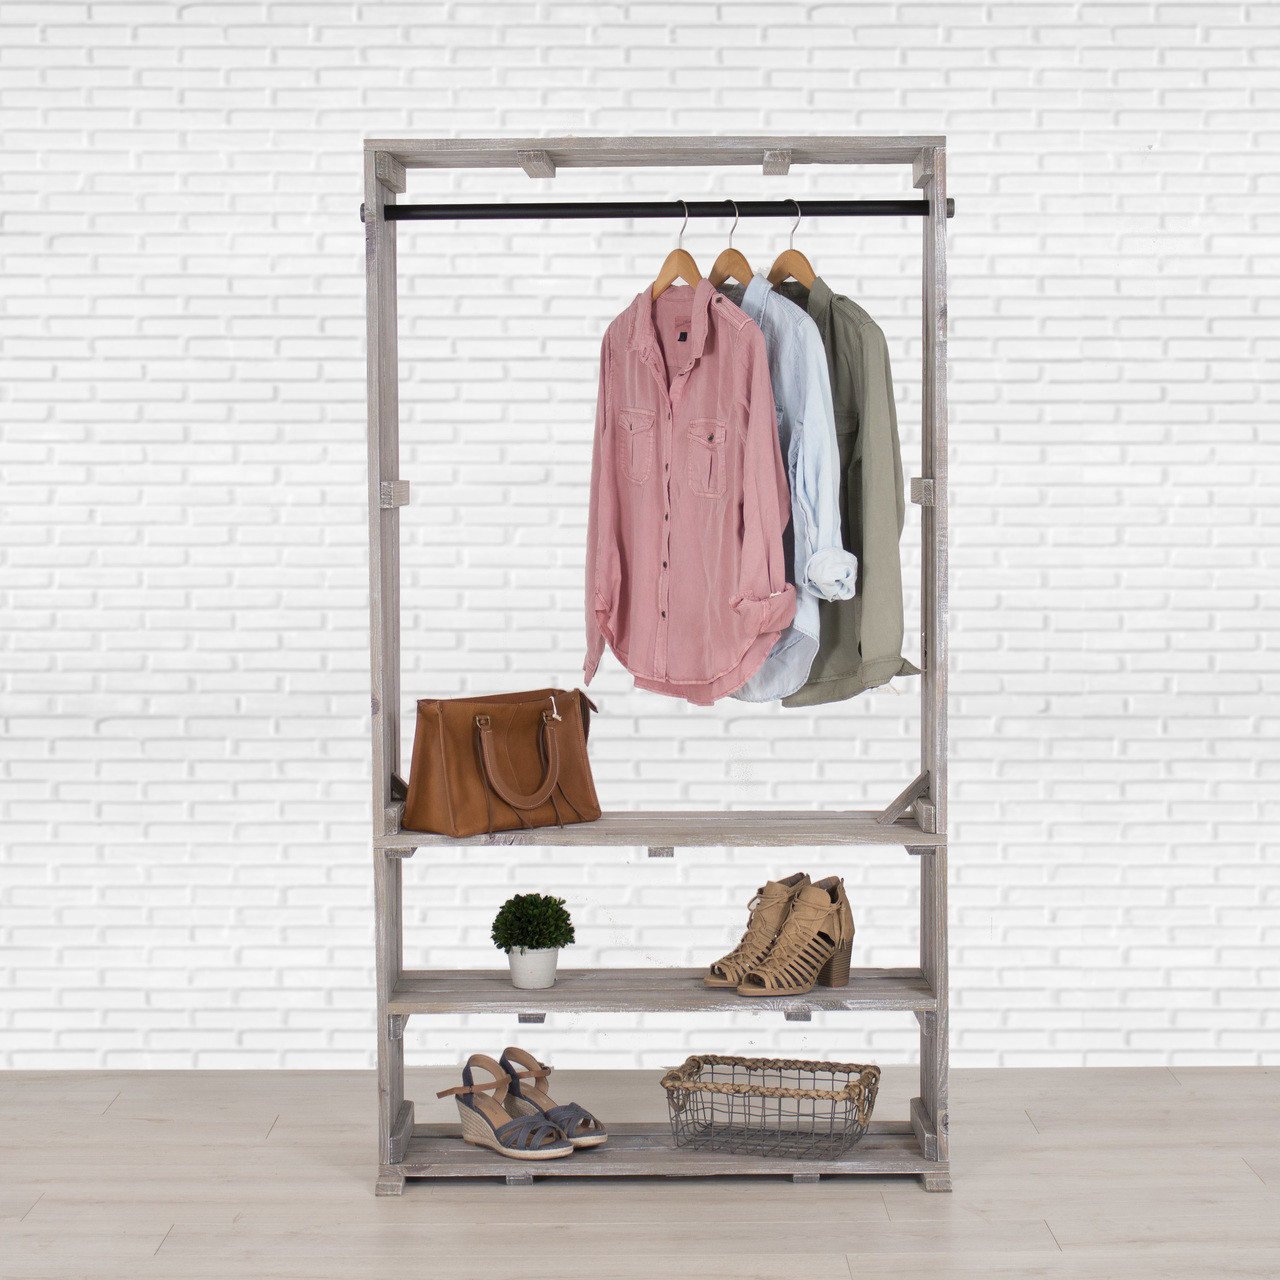 Wooden Clothing Rack With Shelves, Free Standing Clothing Storage